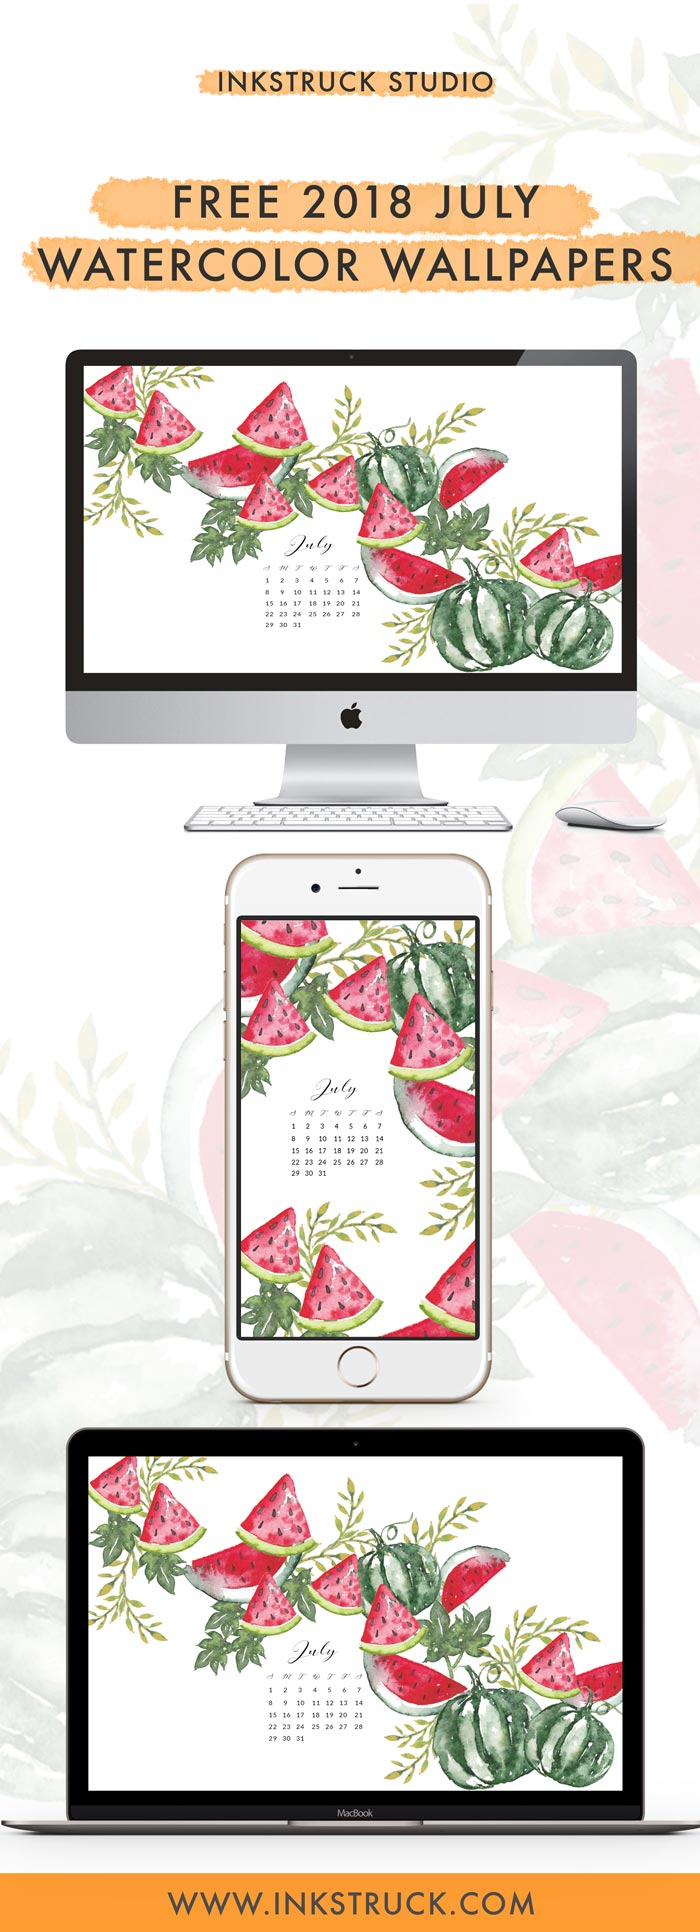 Grab my free 2018 July watercolor wallpapers on the blog now with both dated and undated versions for phones and desktops. - Inkstruck Studio